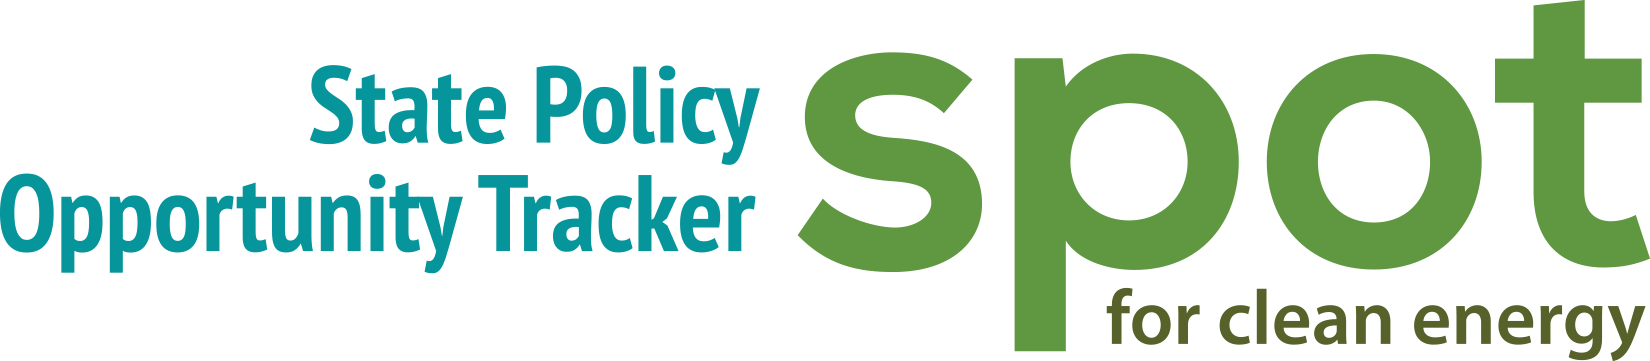 The State Policy Opportunity Tracker (SPOT) for Clean Energy